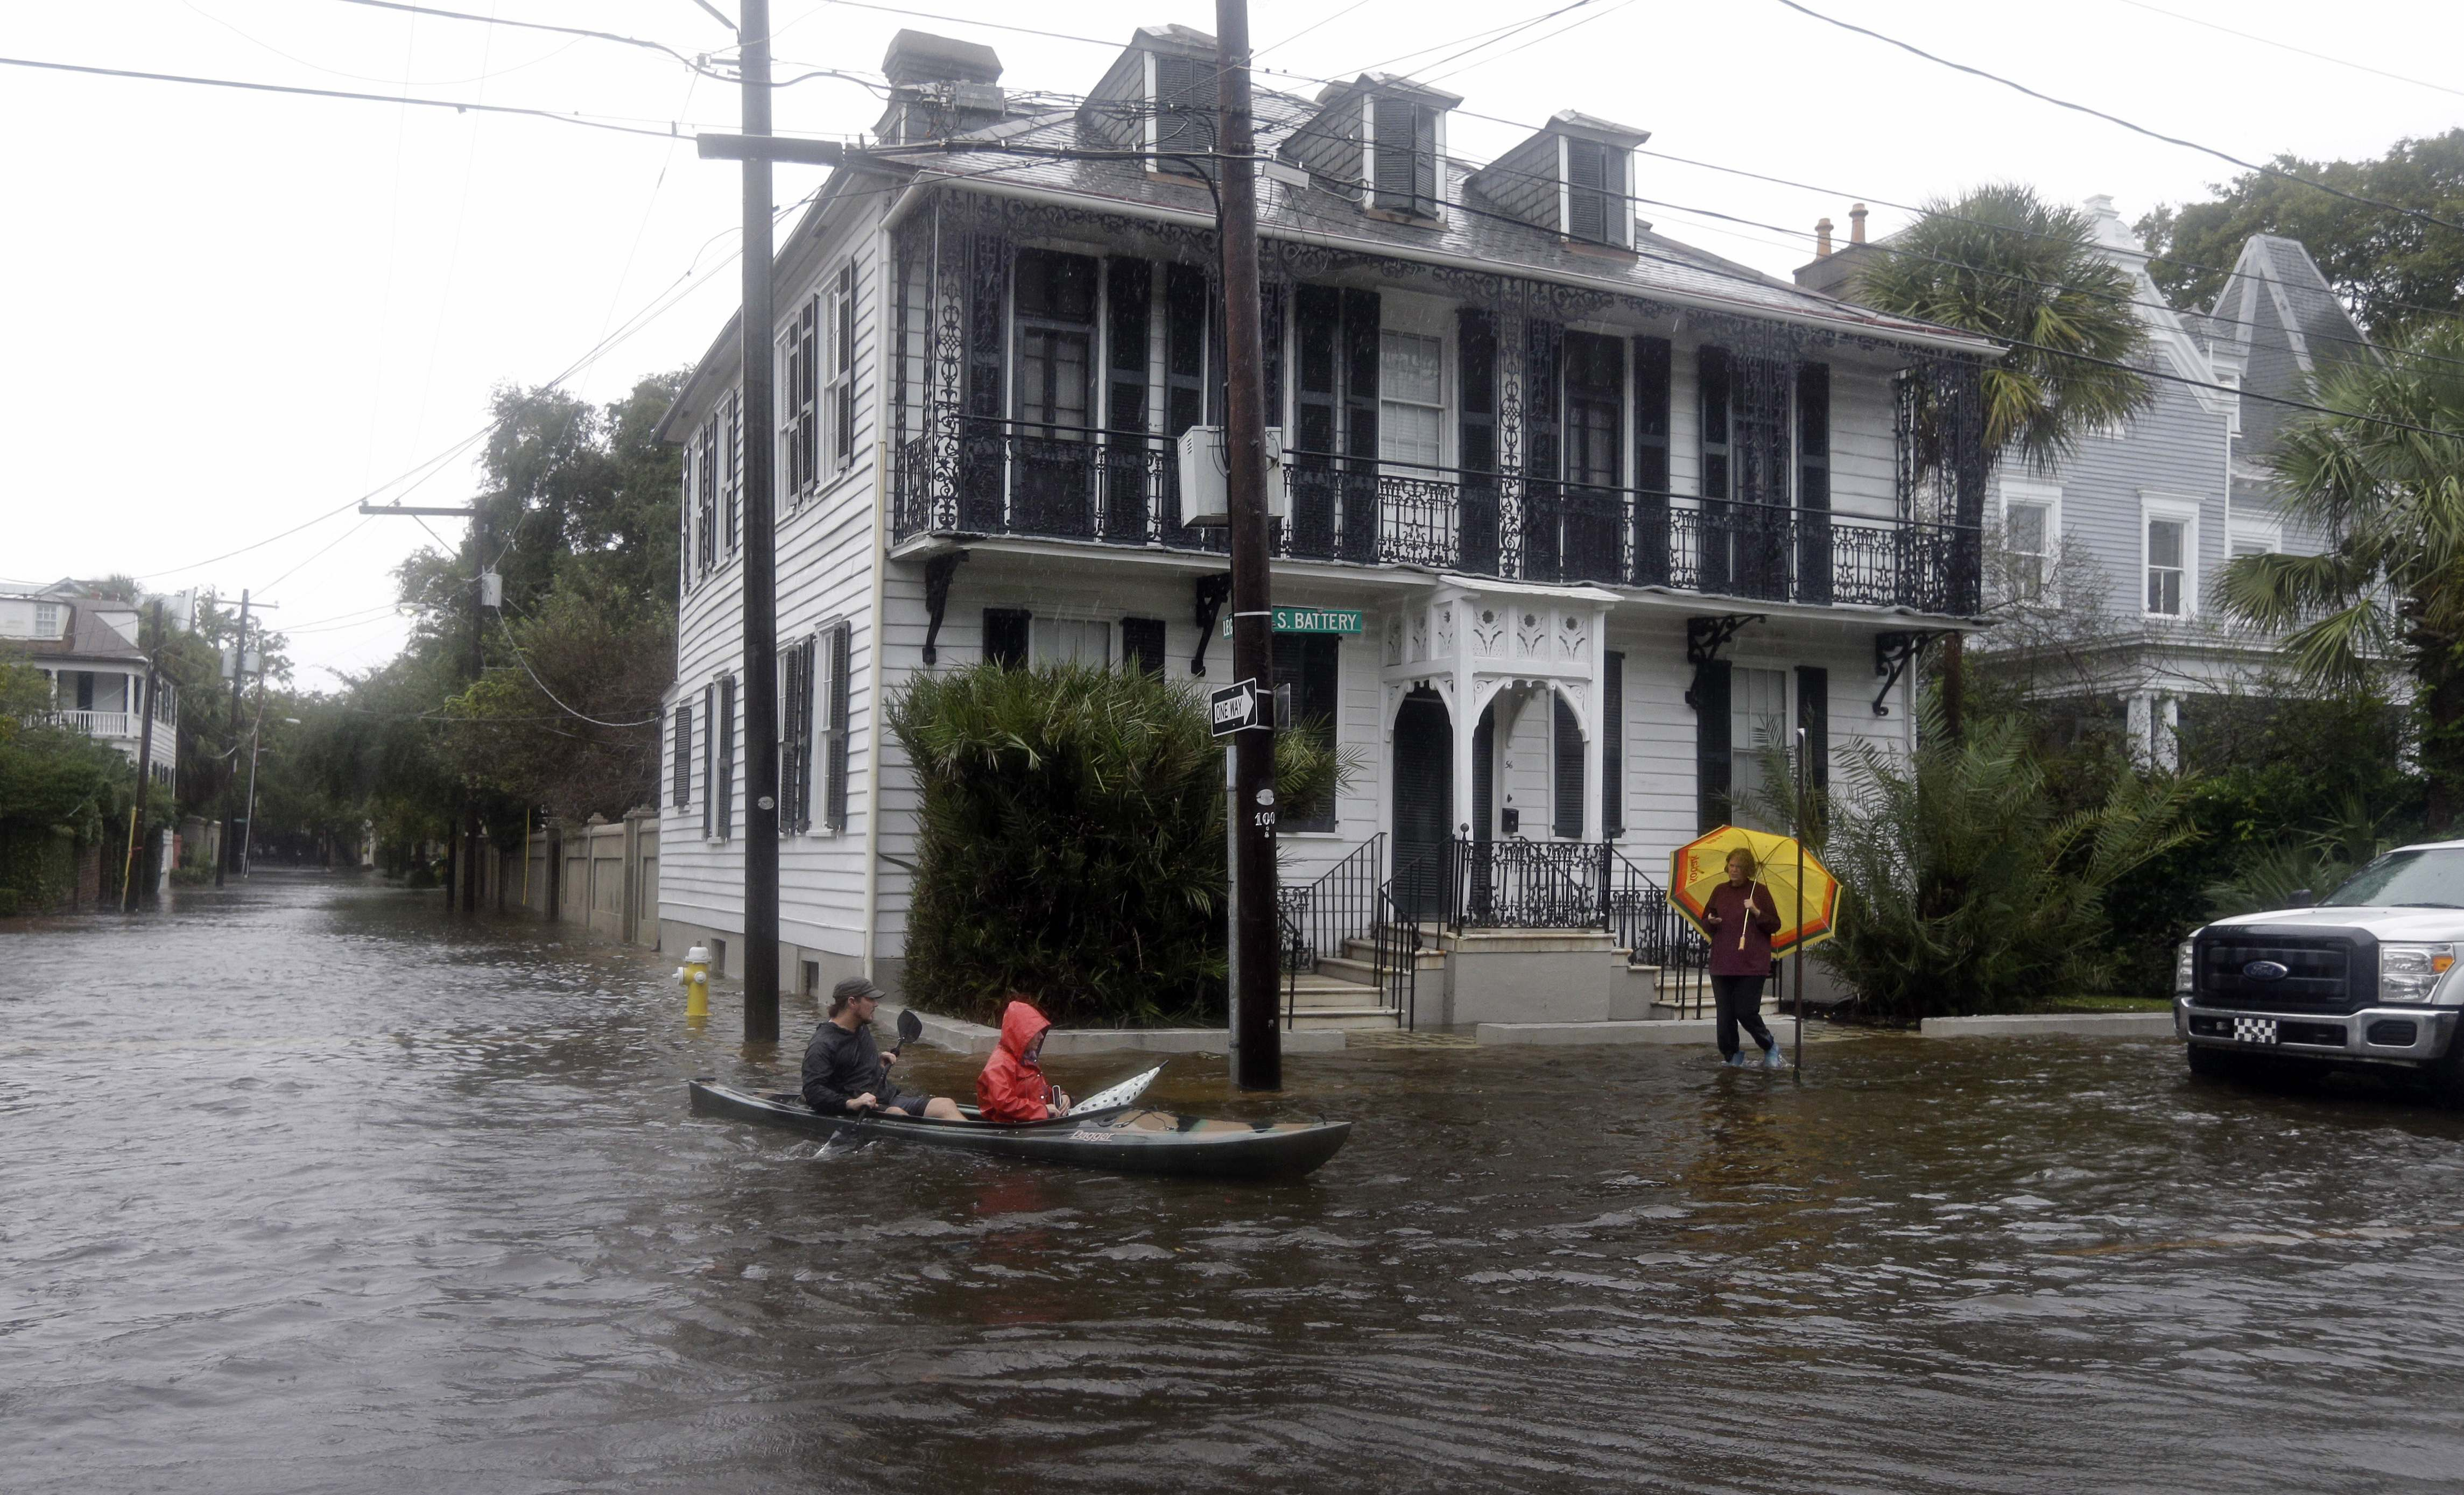 Paul Banker, left, paddles a kayak and his wife Wink Banker, as they takes photos on a flooded street in Charleston, S.C., Saturday, Oct. 3, 2015